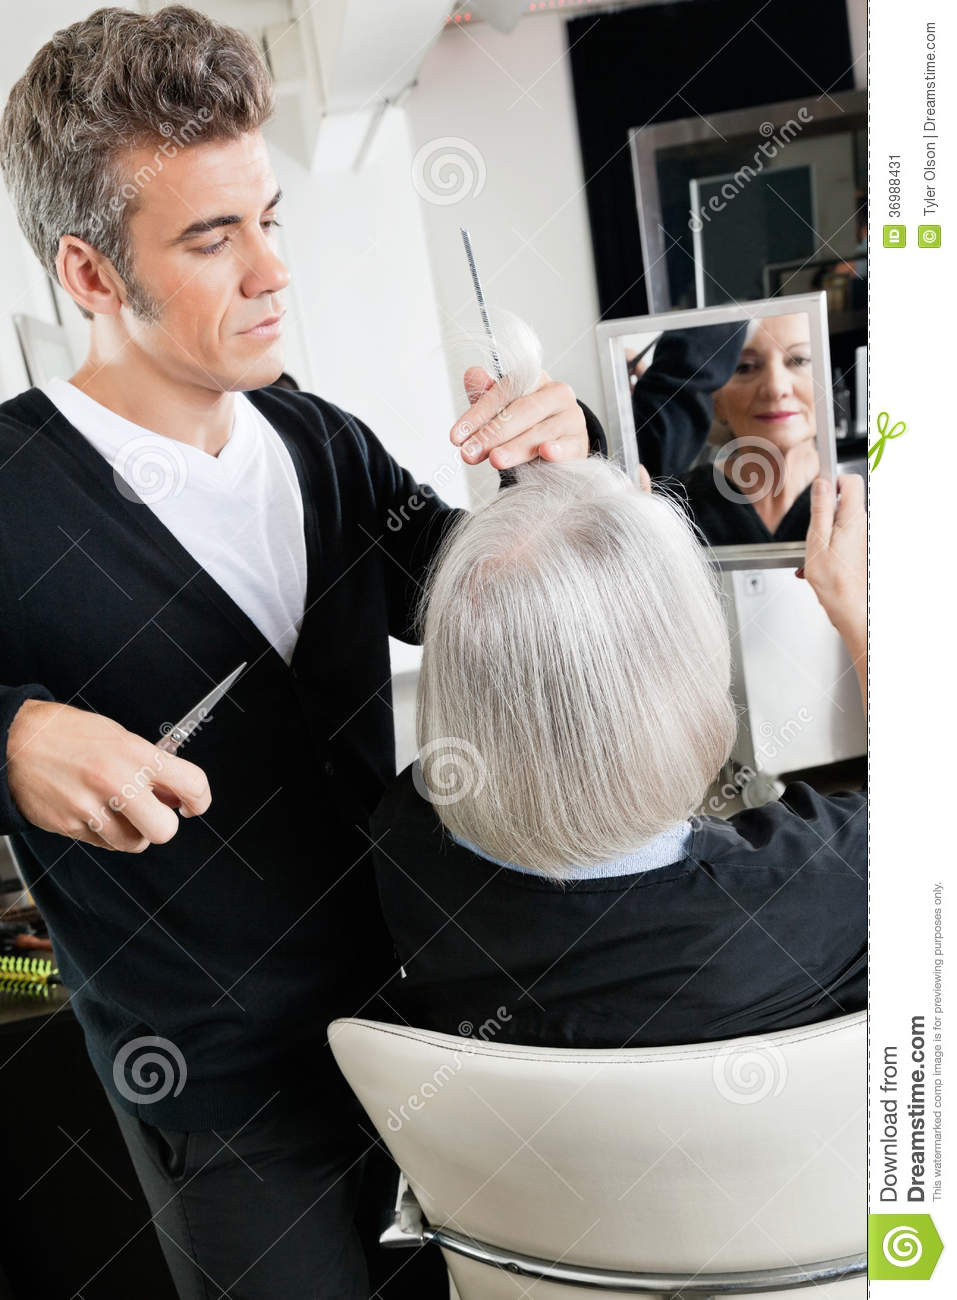 Hairstylist Cutting Hair At Salon Stock Image - Image ...